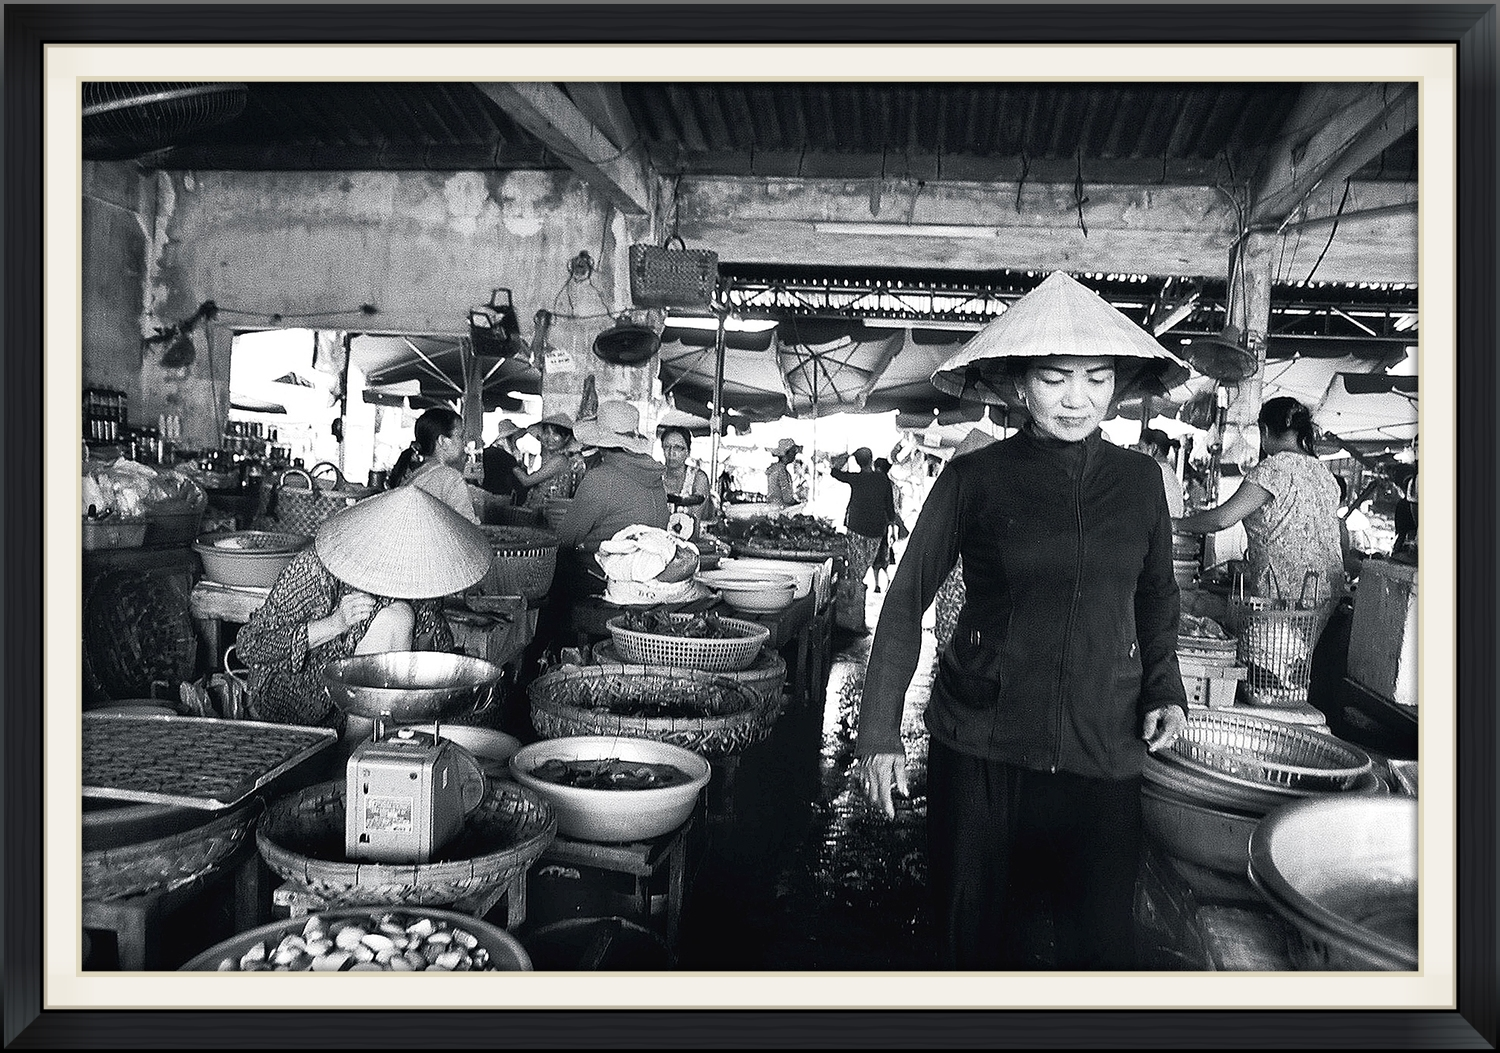 Madame of the Market